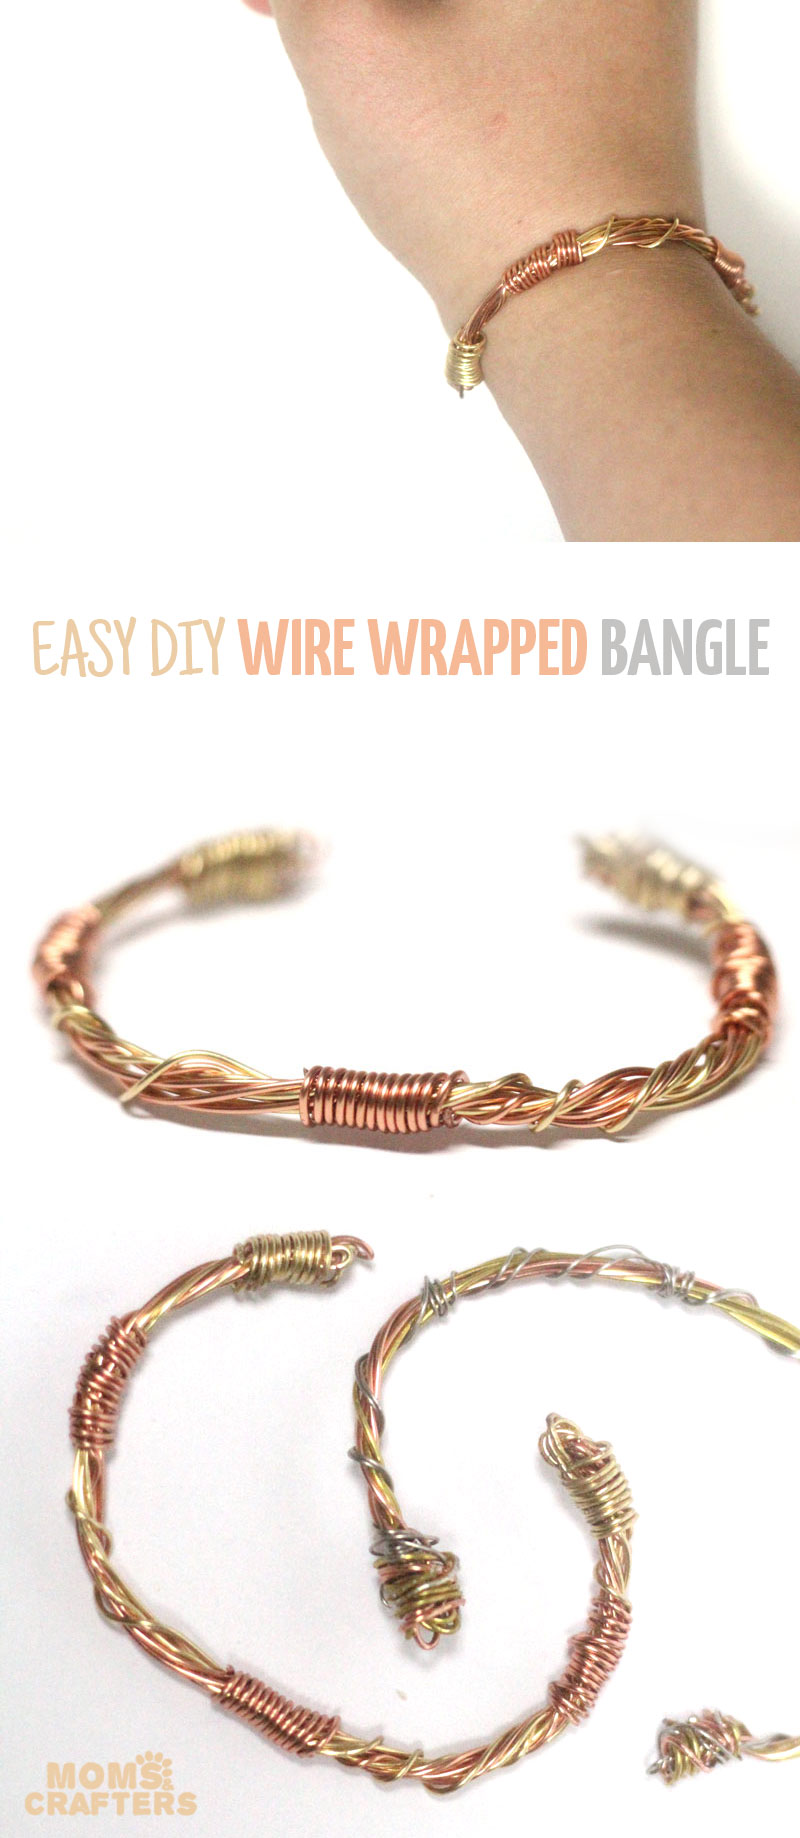 DIY Easy Wire Wrapped Bangle - Moms and Crafters